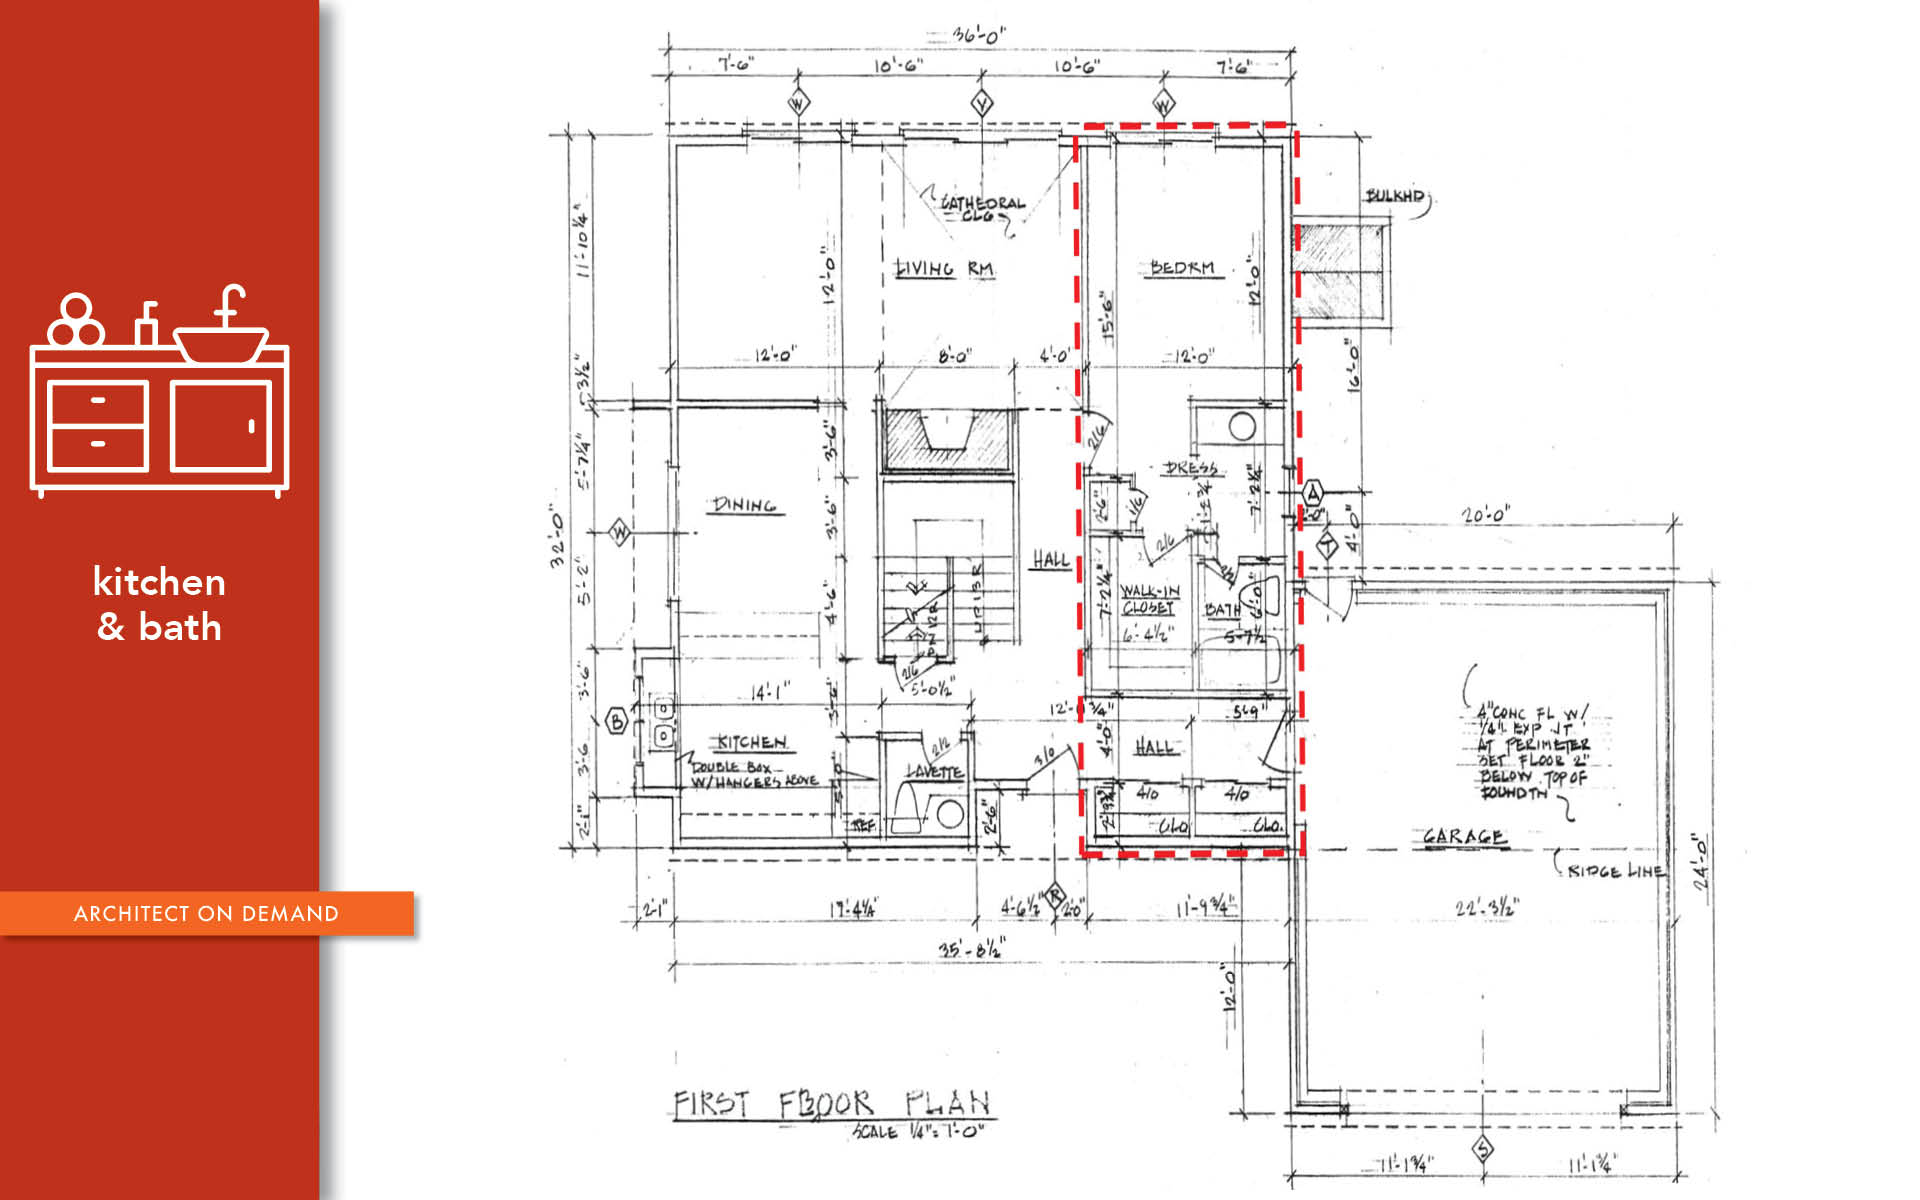 master bedroom, bathroom, renovation, architect on demand, advice without strings